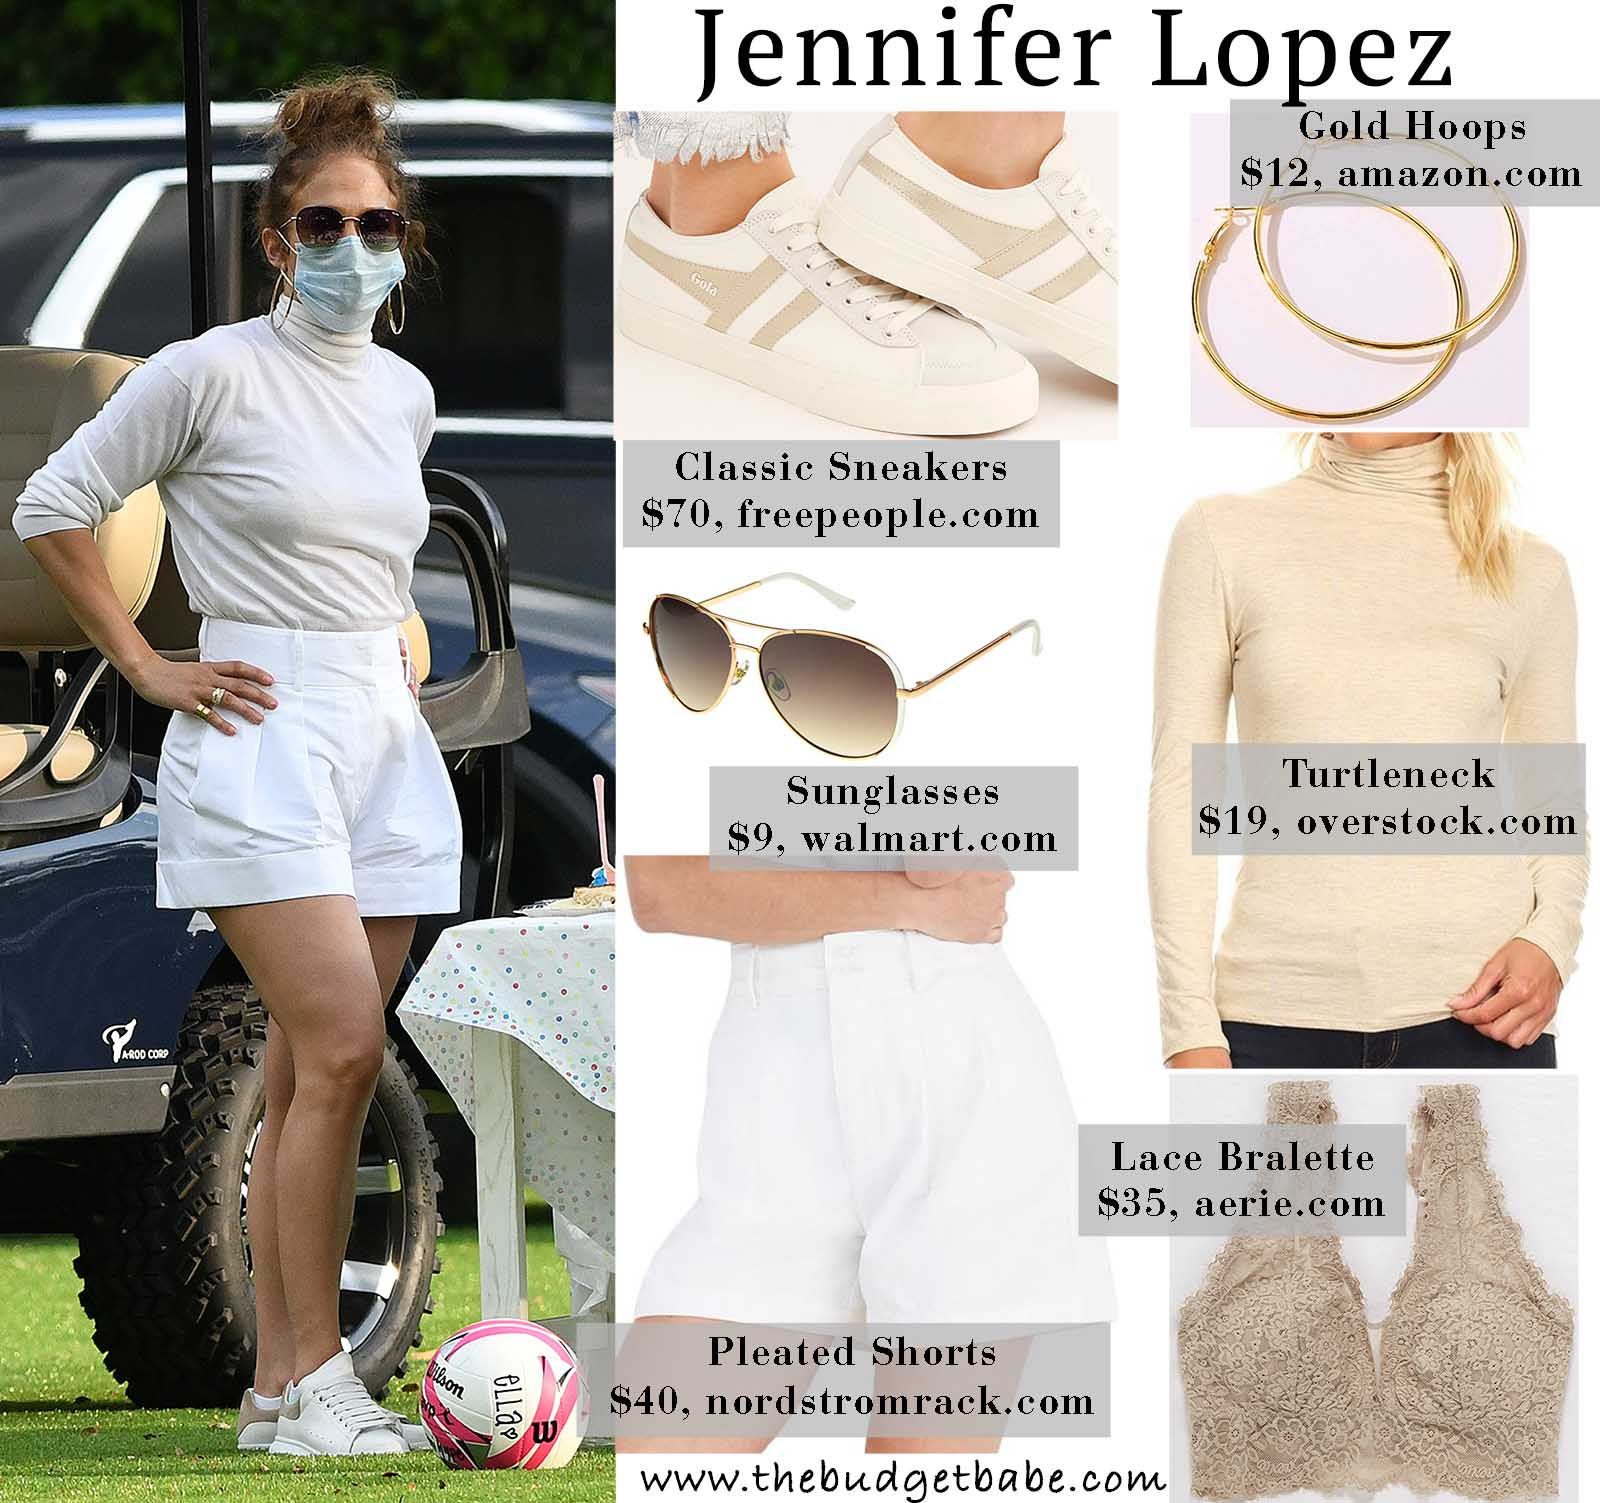 Jlo mixes it up in a turtleneck and shorts.